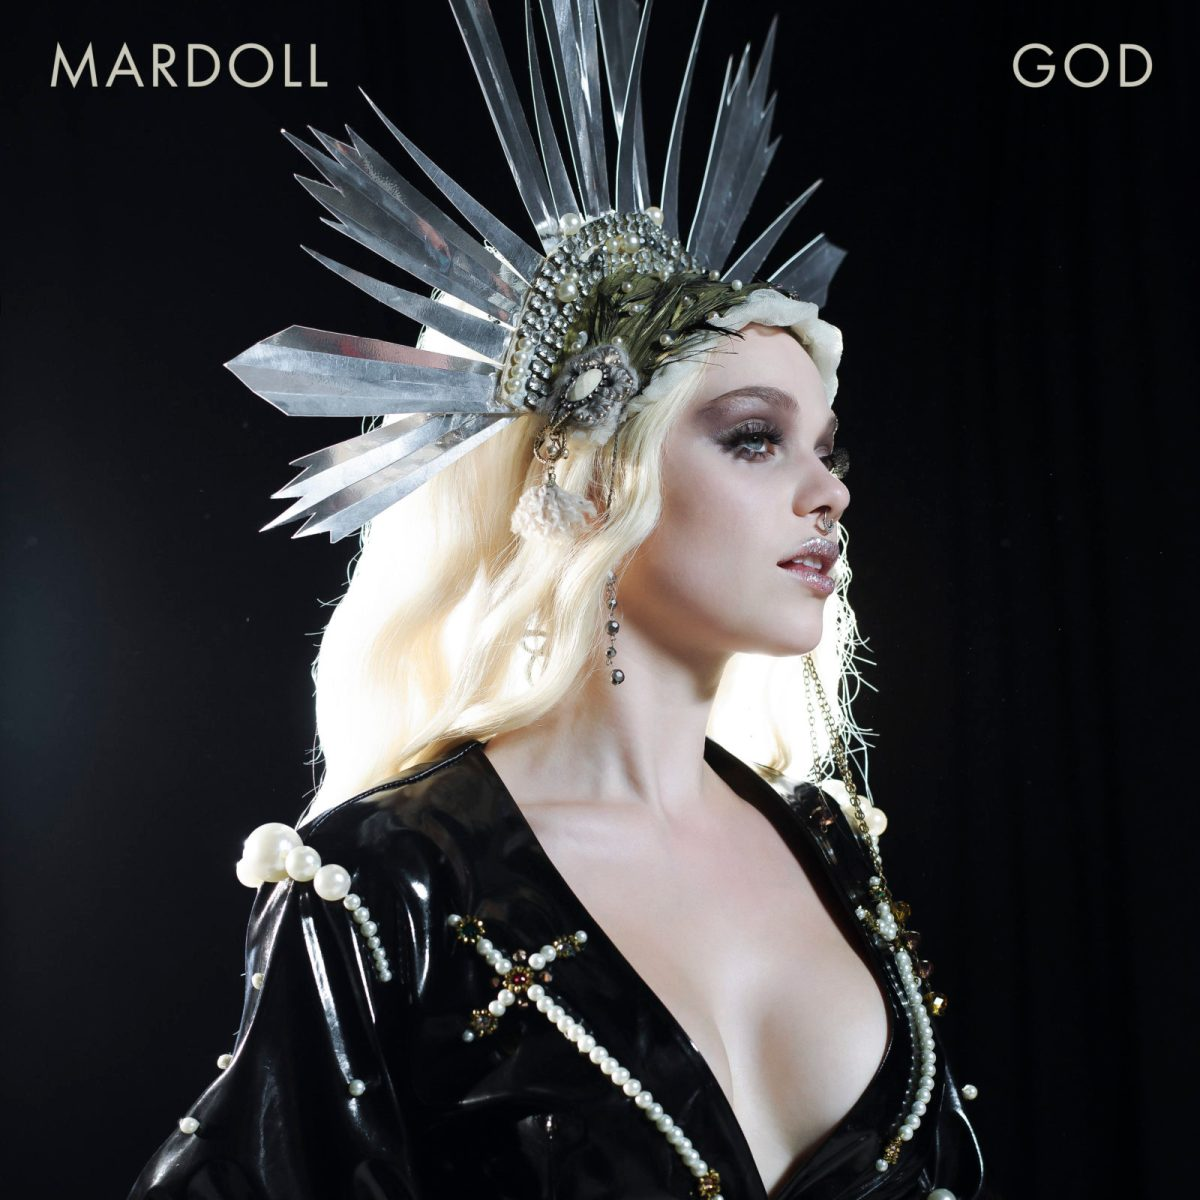 INTERVIEW - Singer, songwriter and captivating performer Mardoll is on a quest to use her international background to build bridges between cultures